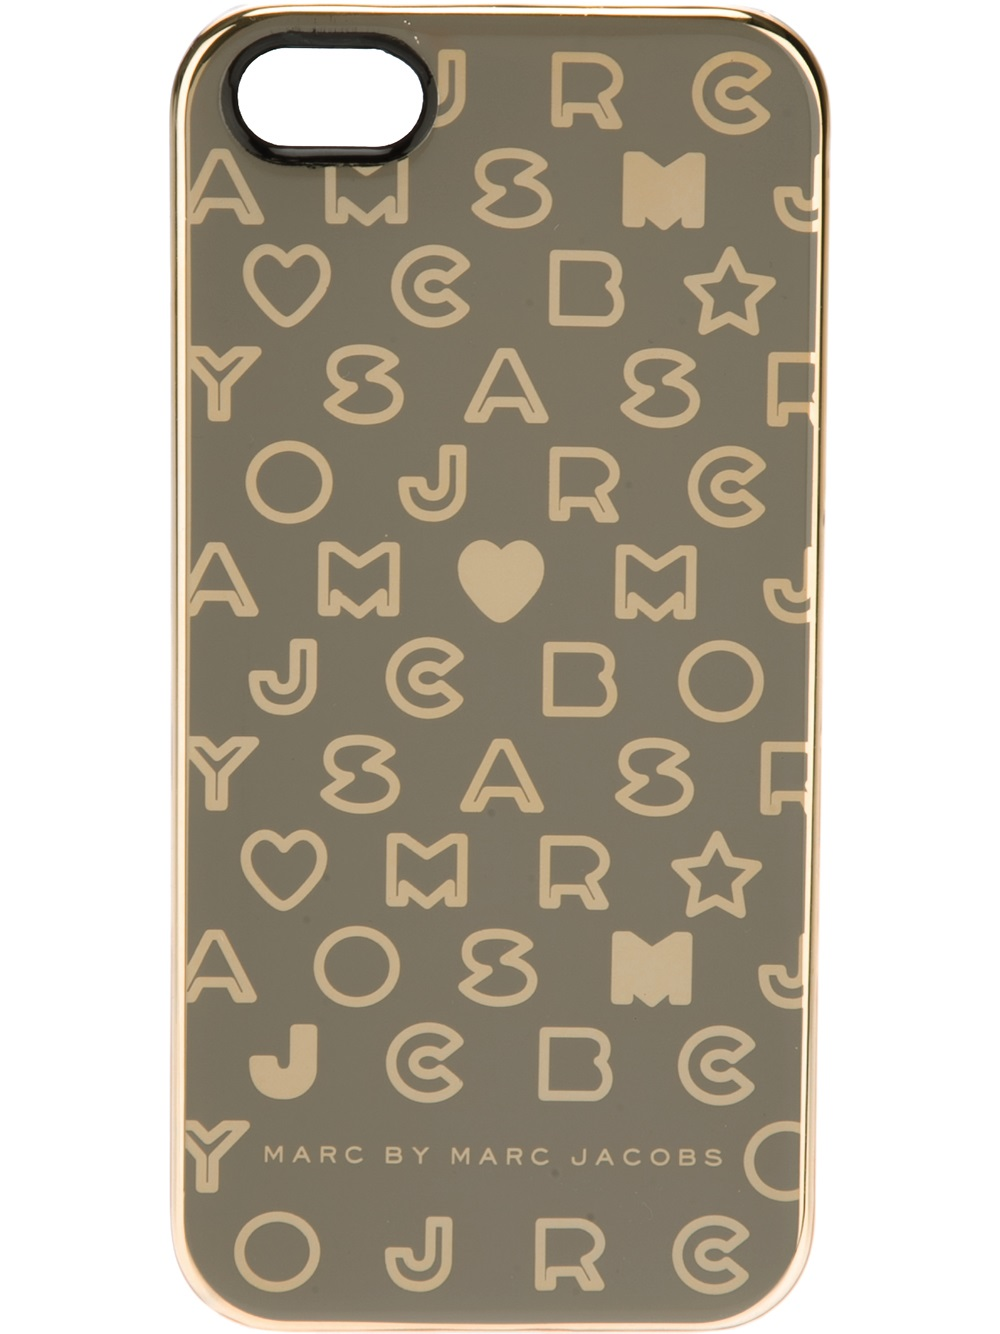 marc by marc jacobs stardust iphone 5 case in gray lyst. Black Bedroom Furniture Sets. Home Design Ideas